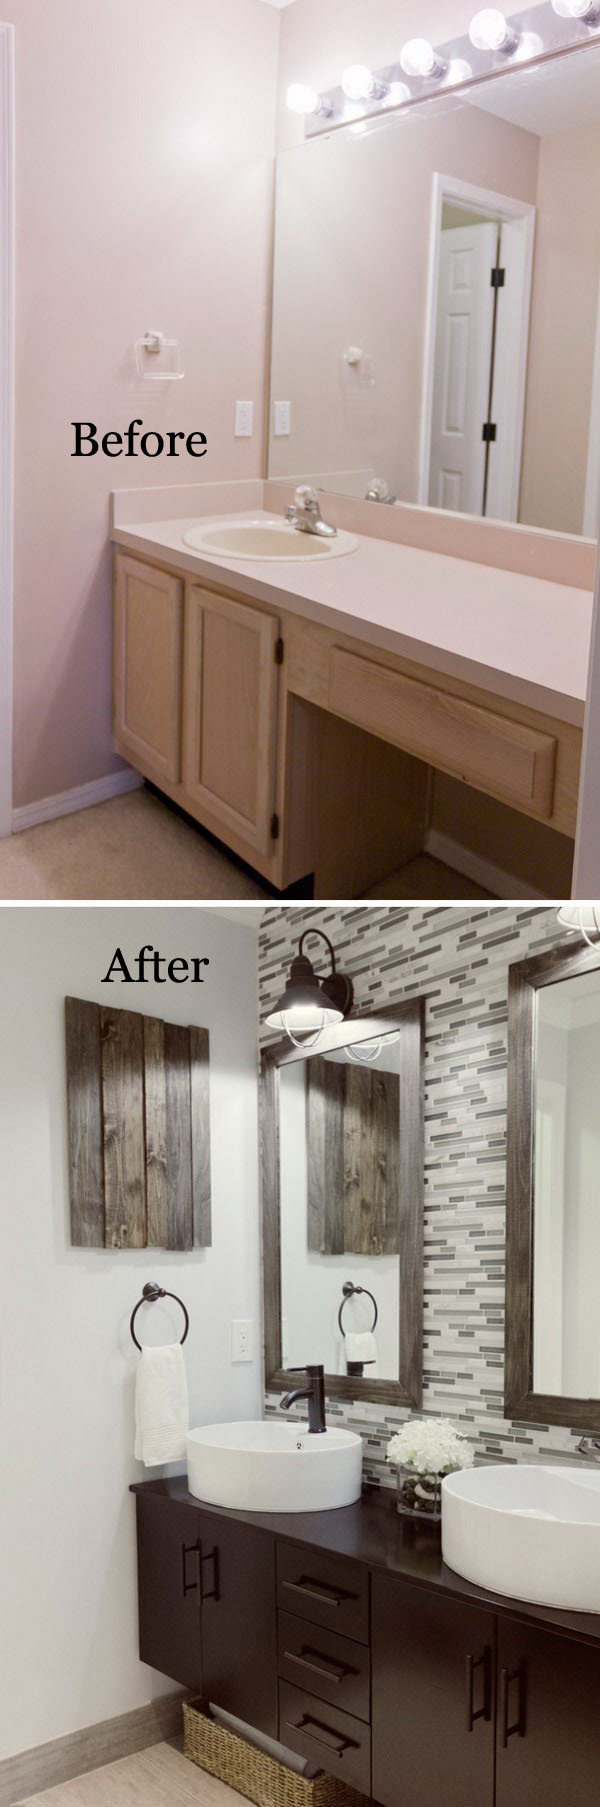 Before and after 20 awesome bathroom makeovers hative Best bathroom remodeling company